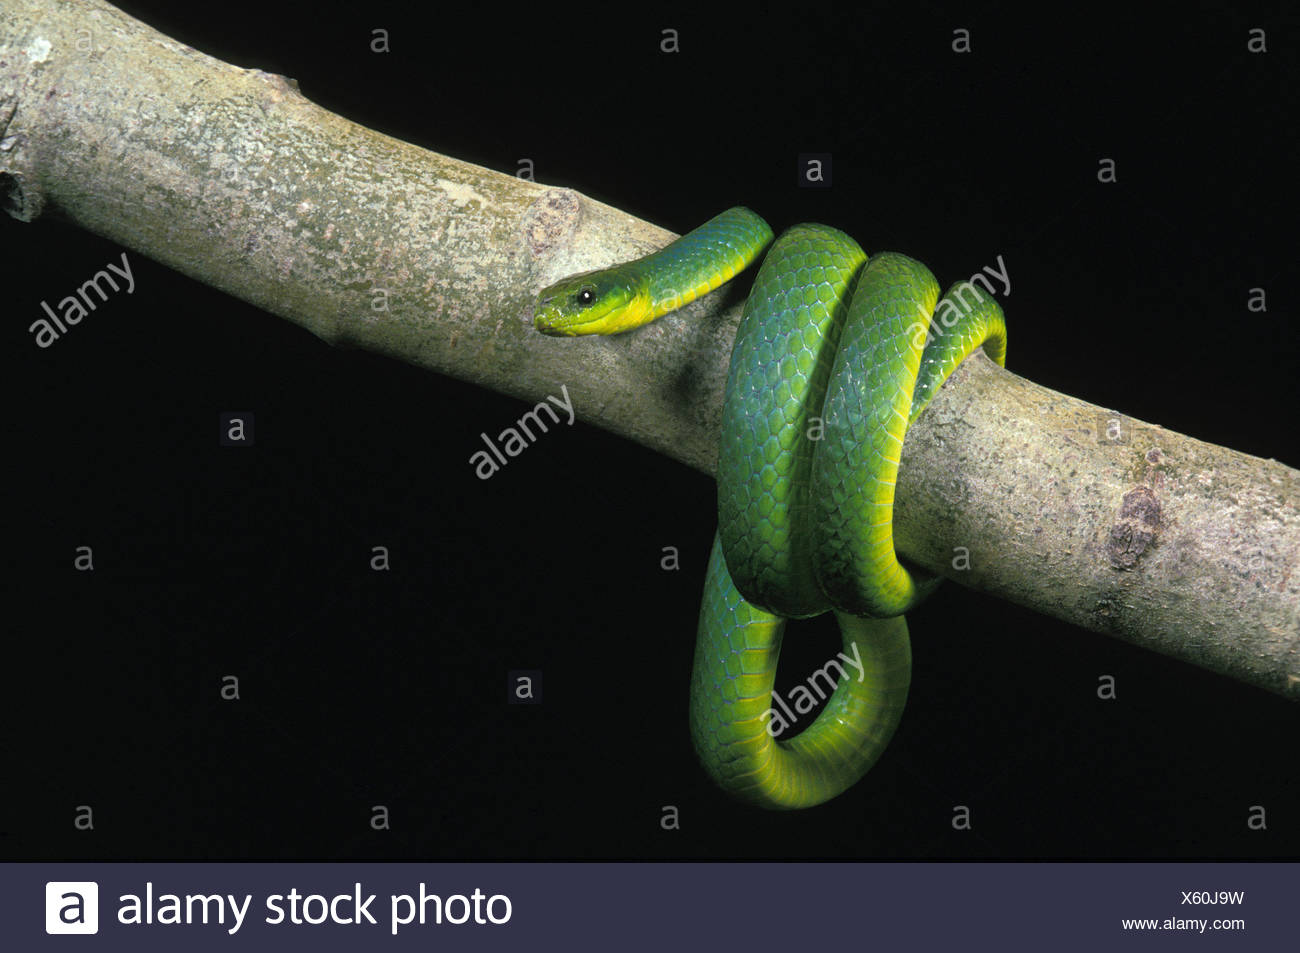 Green Snake, opheodrys major against Black Background Stock Photo